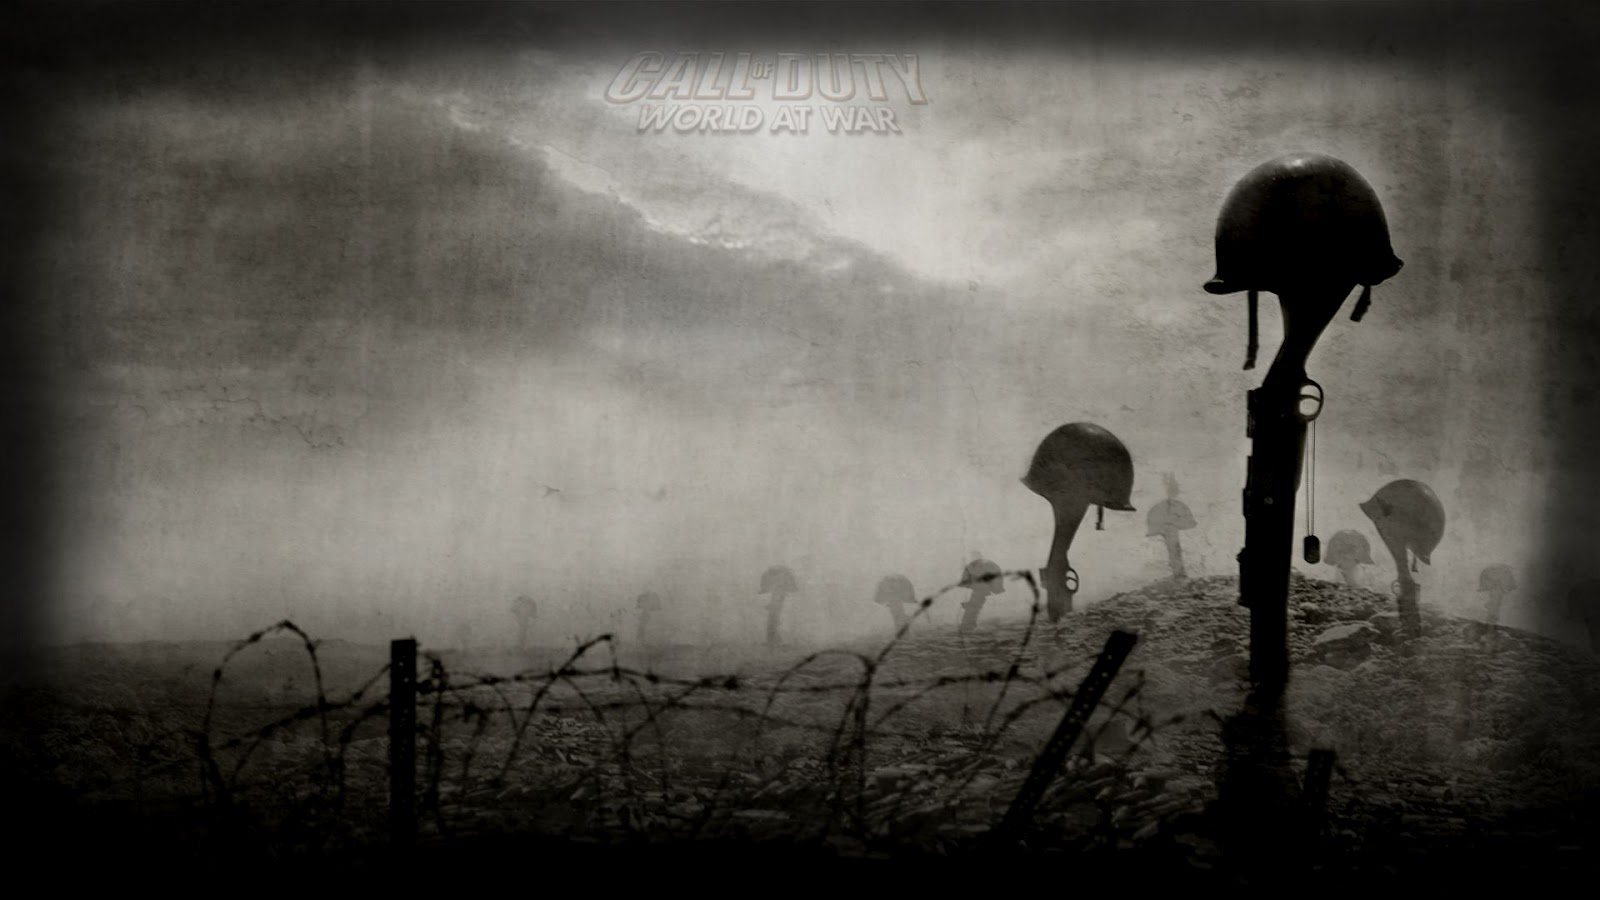 Wallpapers libs large collection of world war ii - Call of duty world war 2 background ...